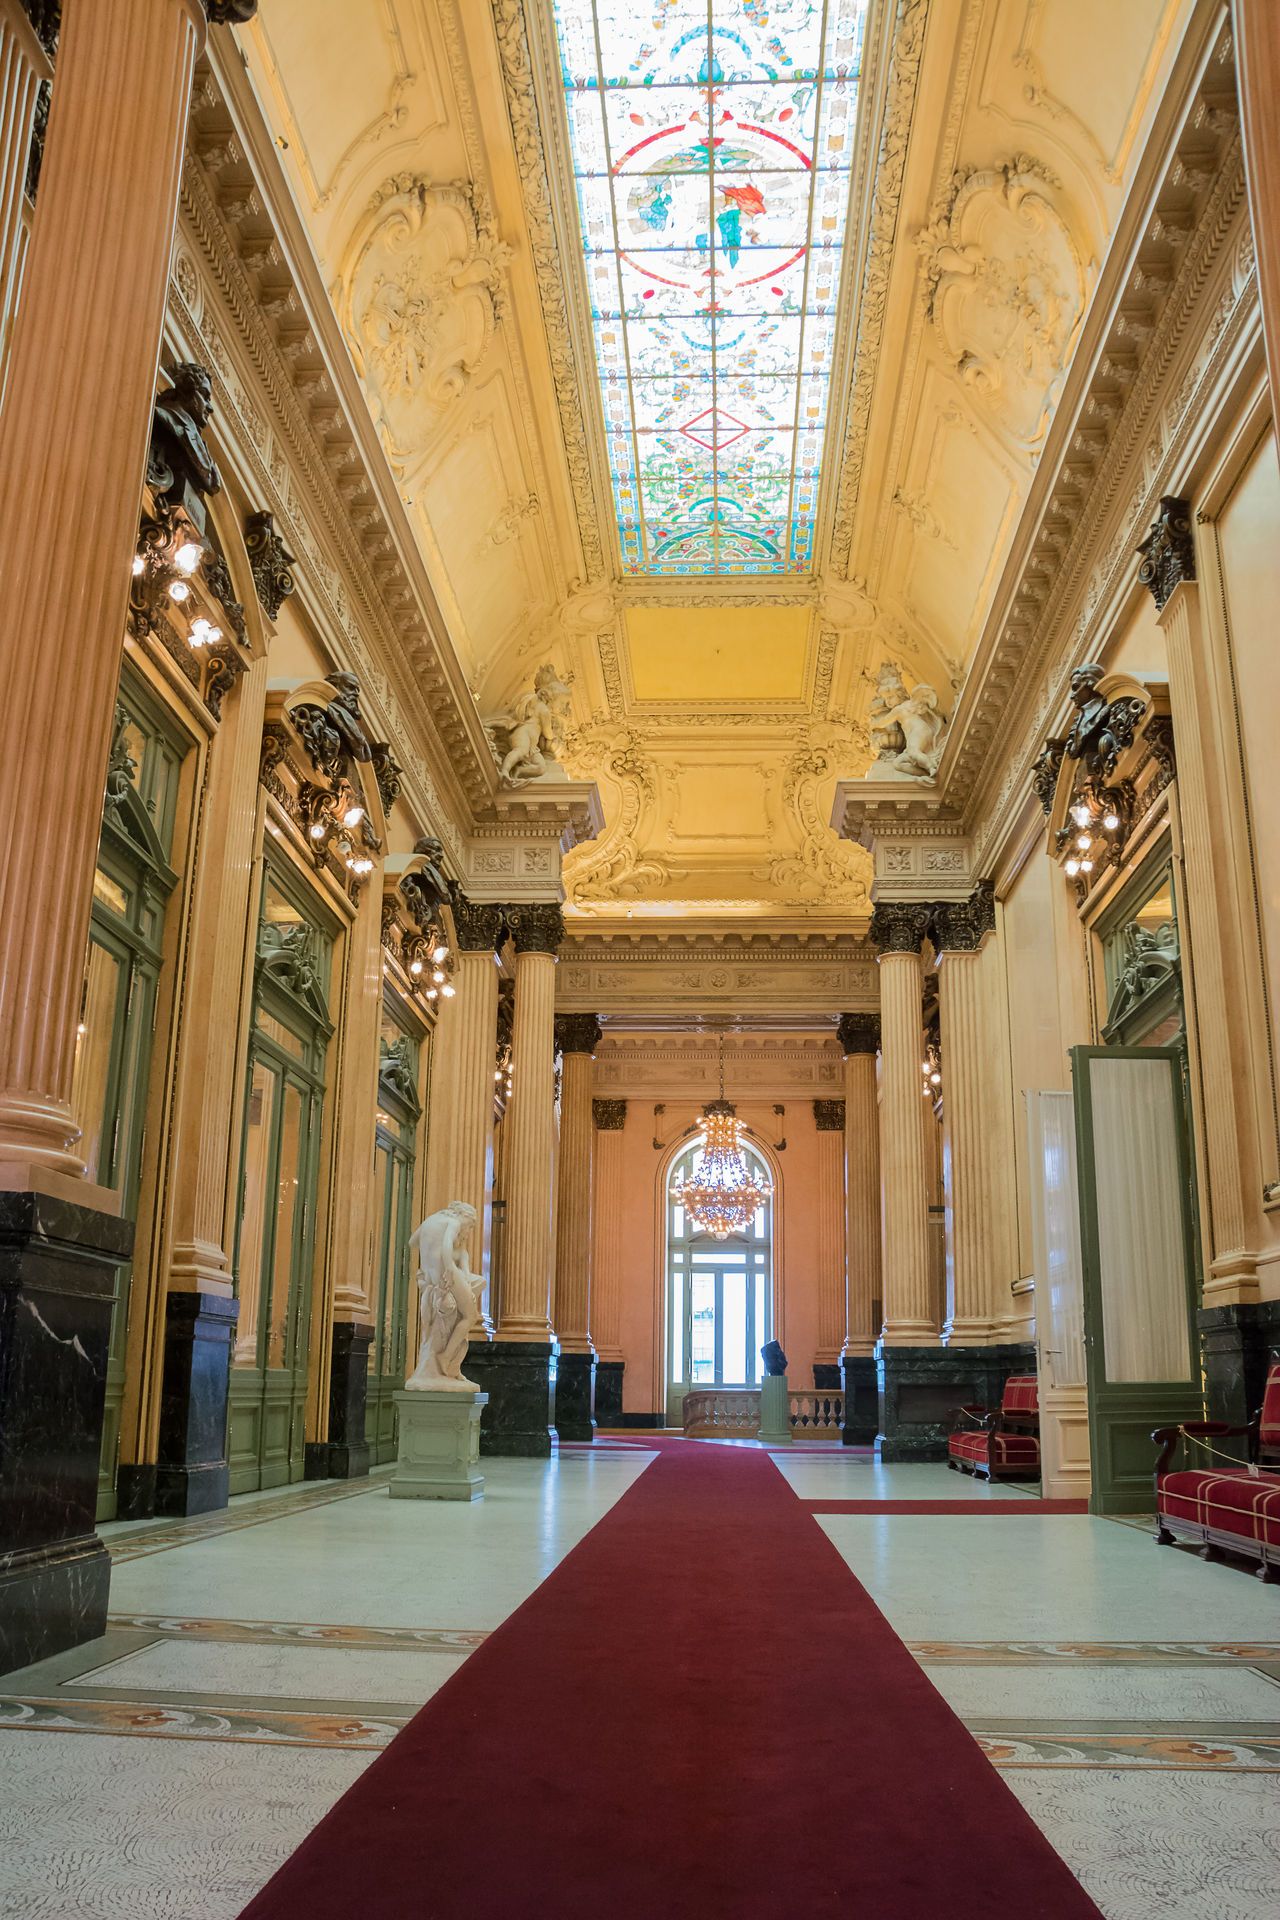 Buenos Aires, Argentina - October 28, 2016: Lounge of Colon theater in Buenos Aires with nobody. Argentina Buenos Aires Carpet Colon Columns Lounge Marble Theater